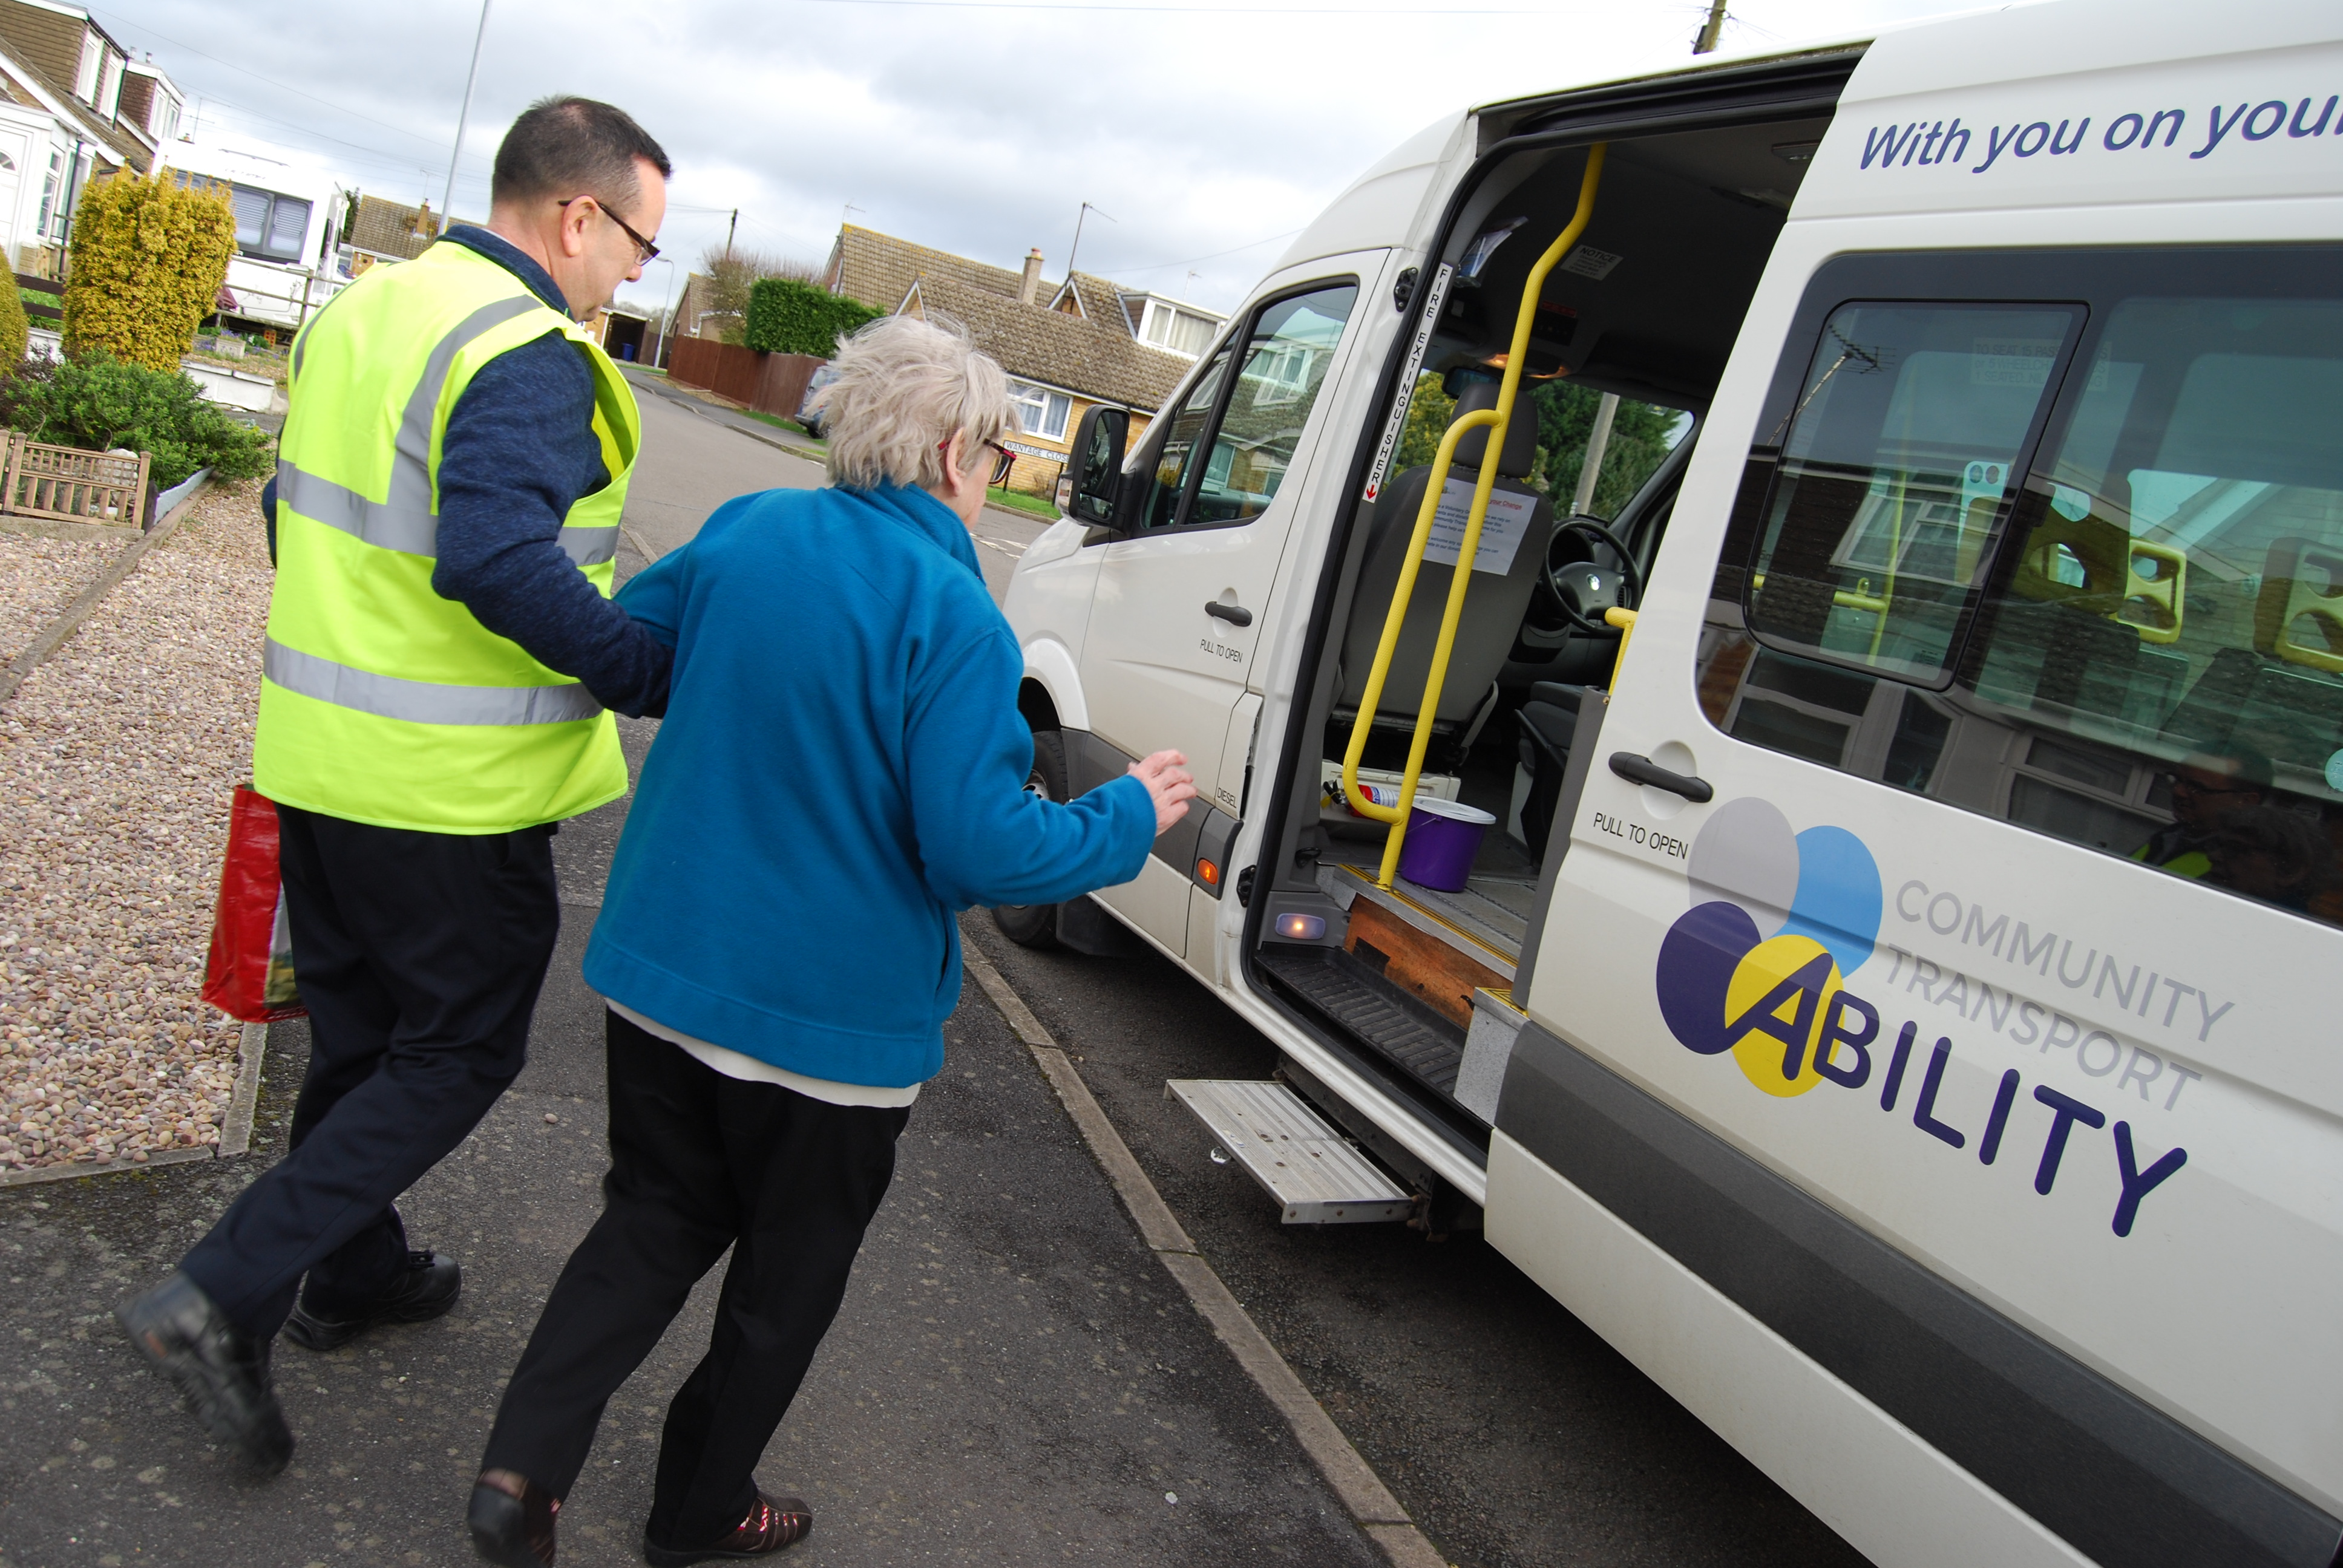 Community Transport proving assistance to the elderly